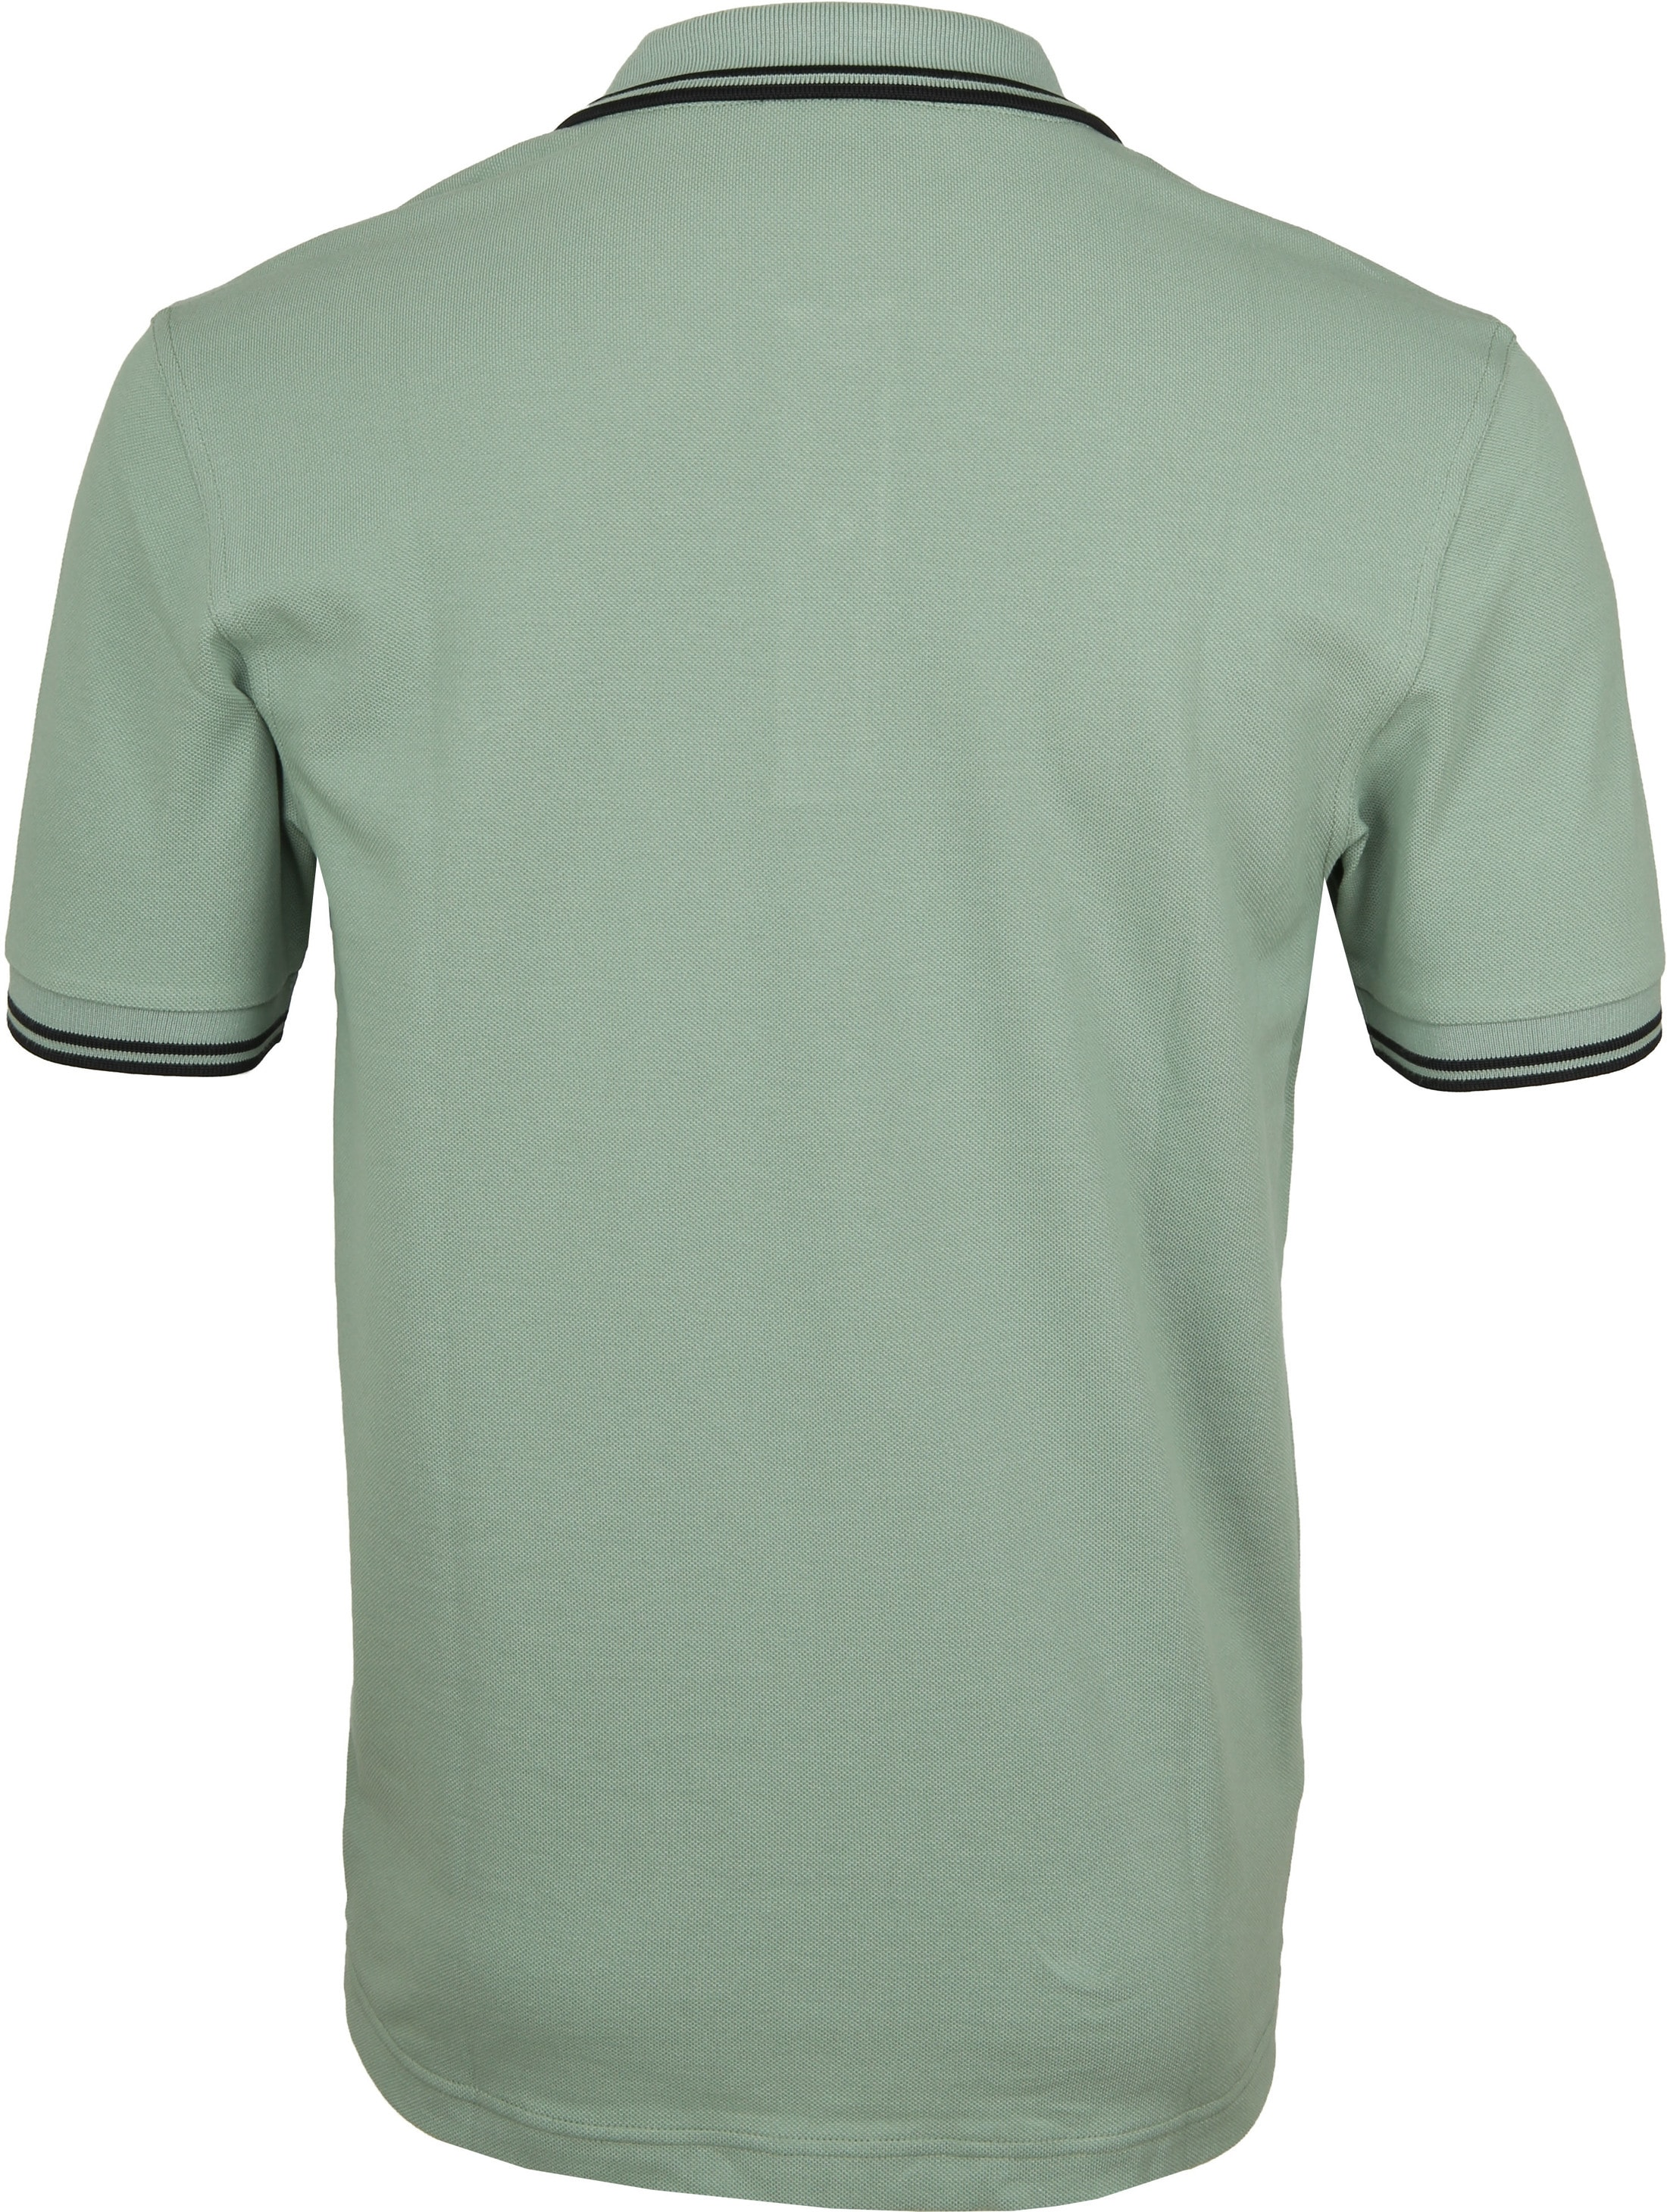 Fred Perry Poloshirt Green I10 foto 2